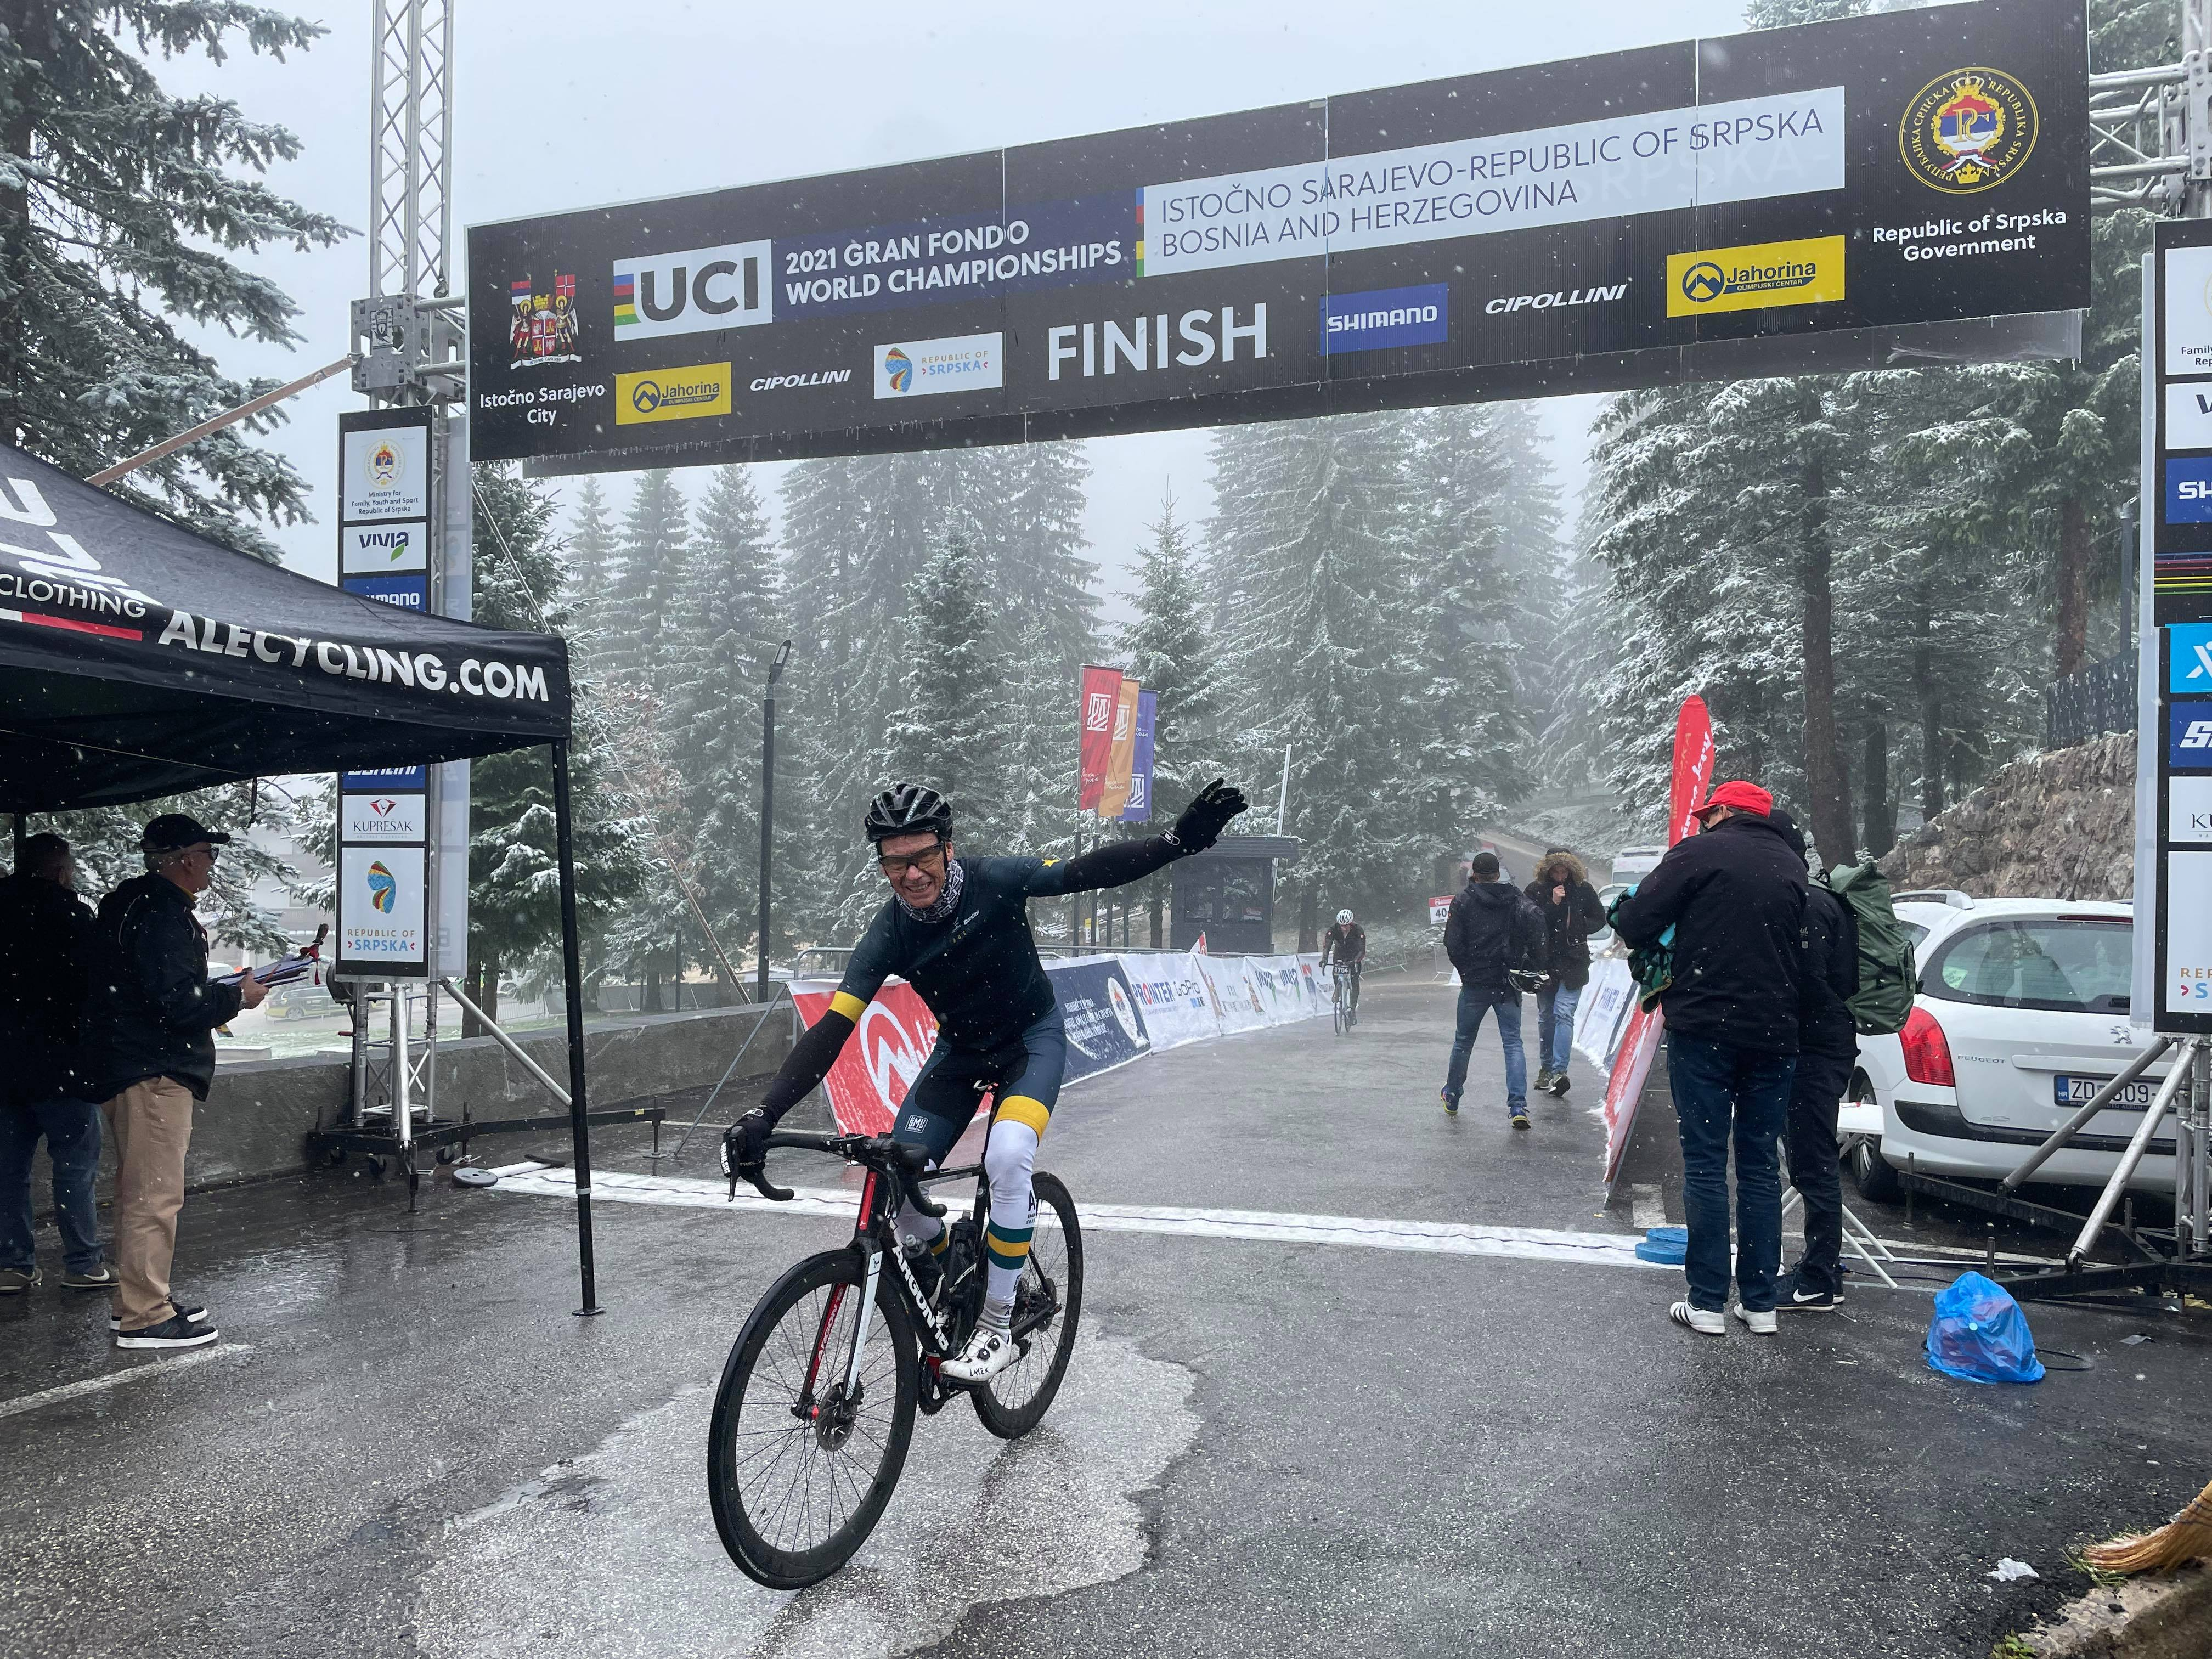 Roger Cull at the 2021 UCI Gran Fondo World Championships in Bosnia and Herzegovina